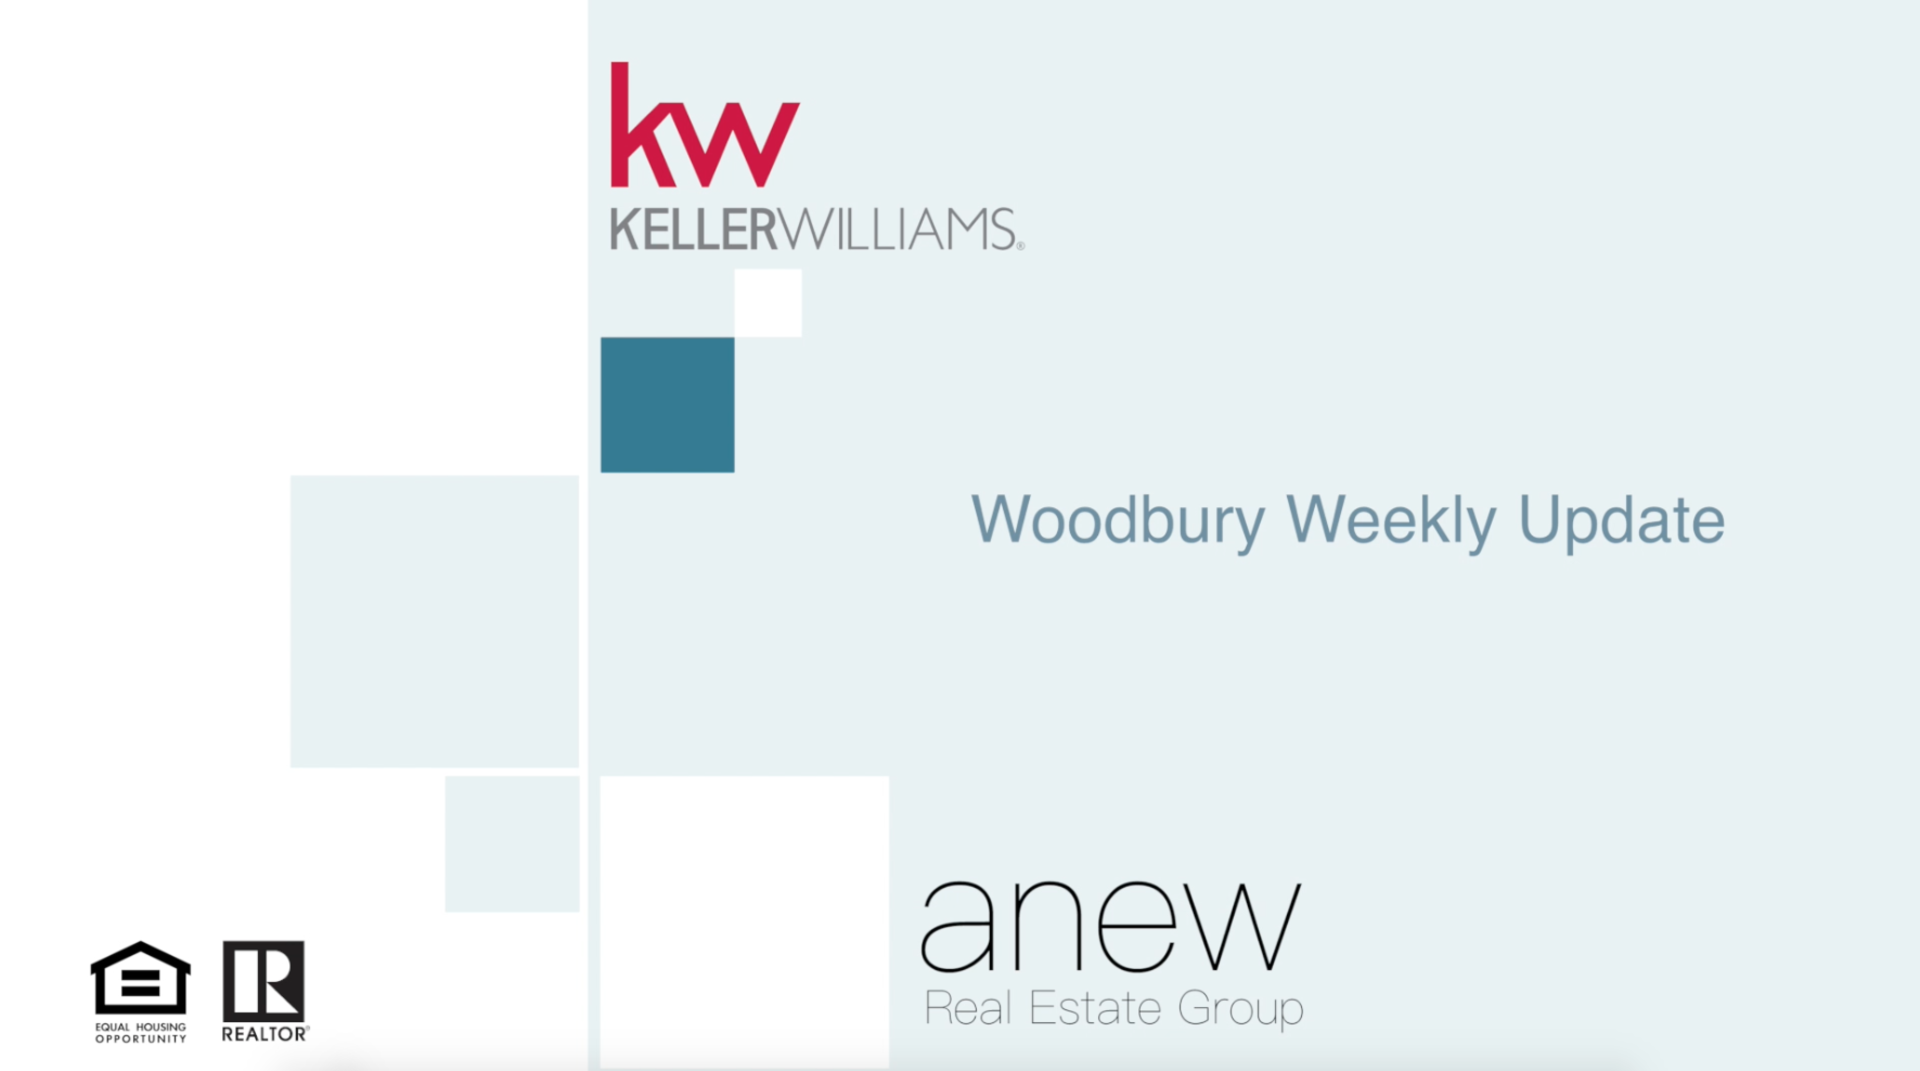 Woodbury Weekly Update for August 6th, 2018